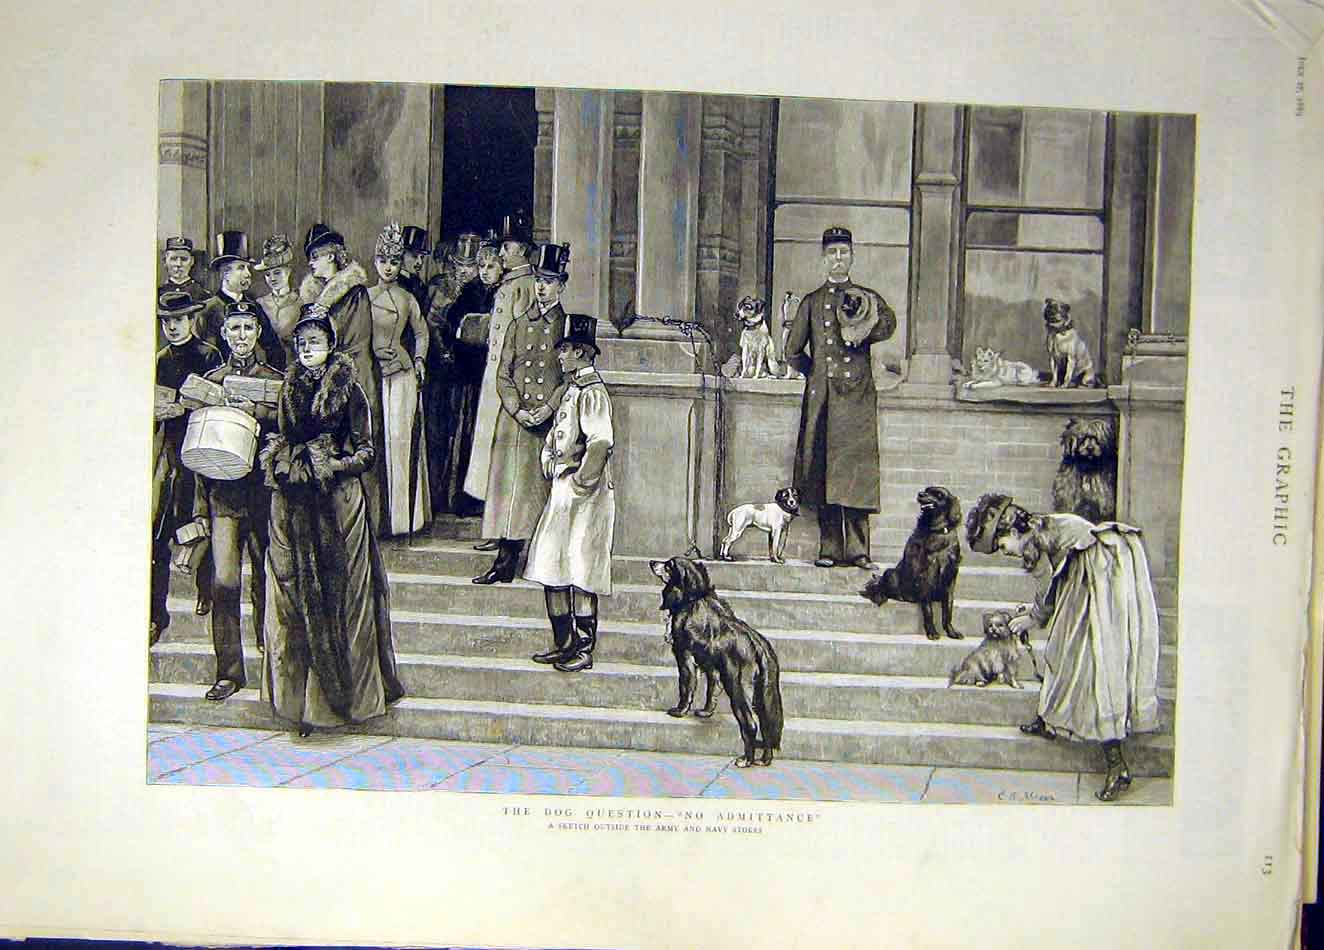 Print 1889 Army Navy Stores Dog Question Sketch 257921 Old Original